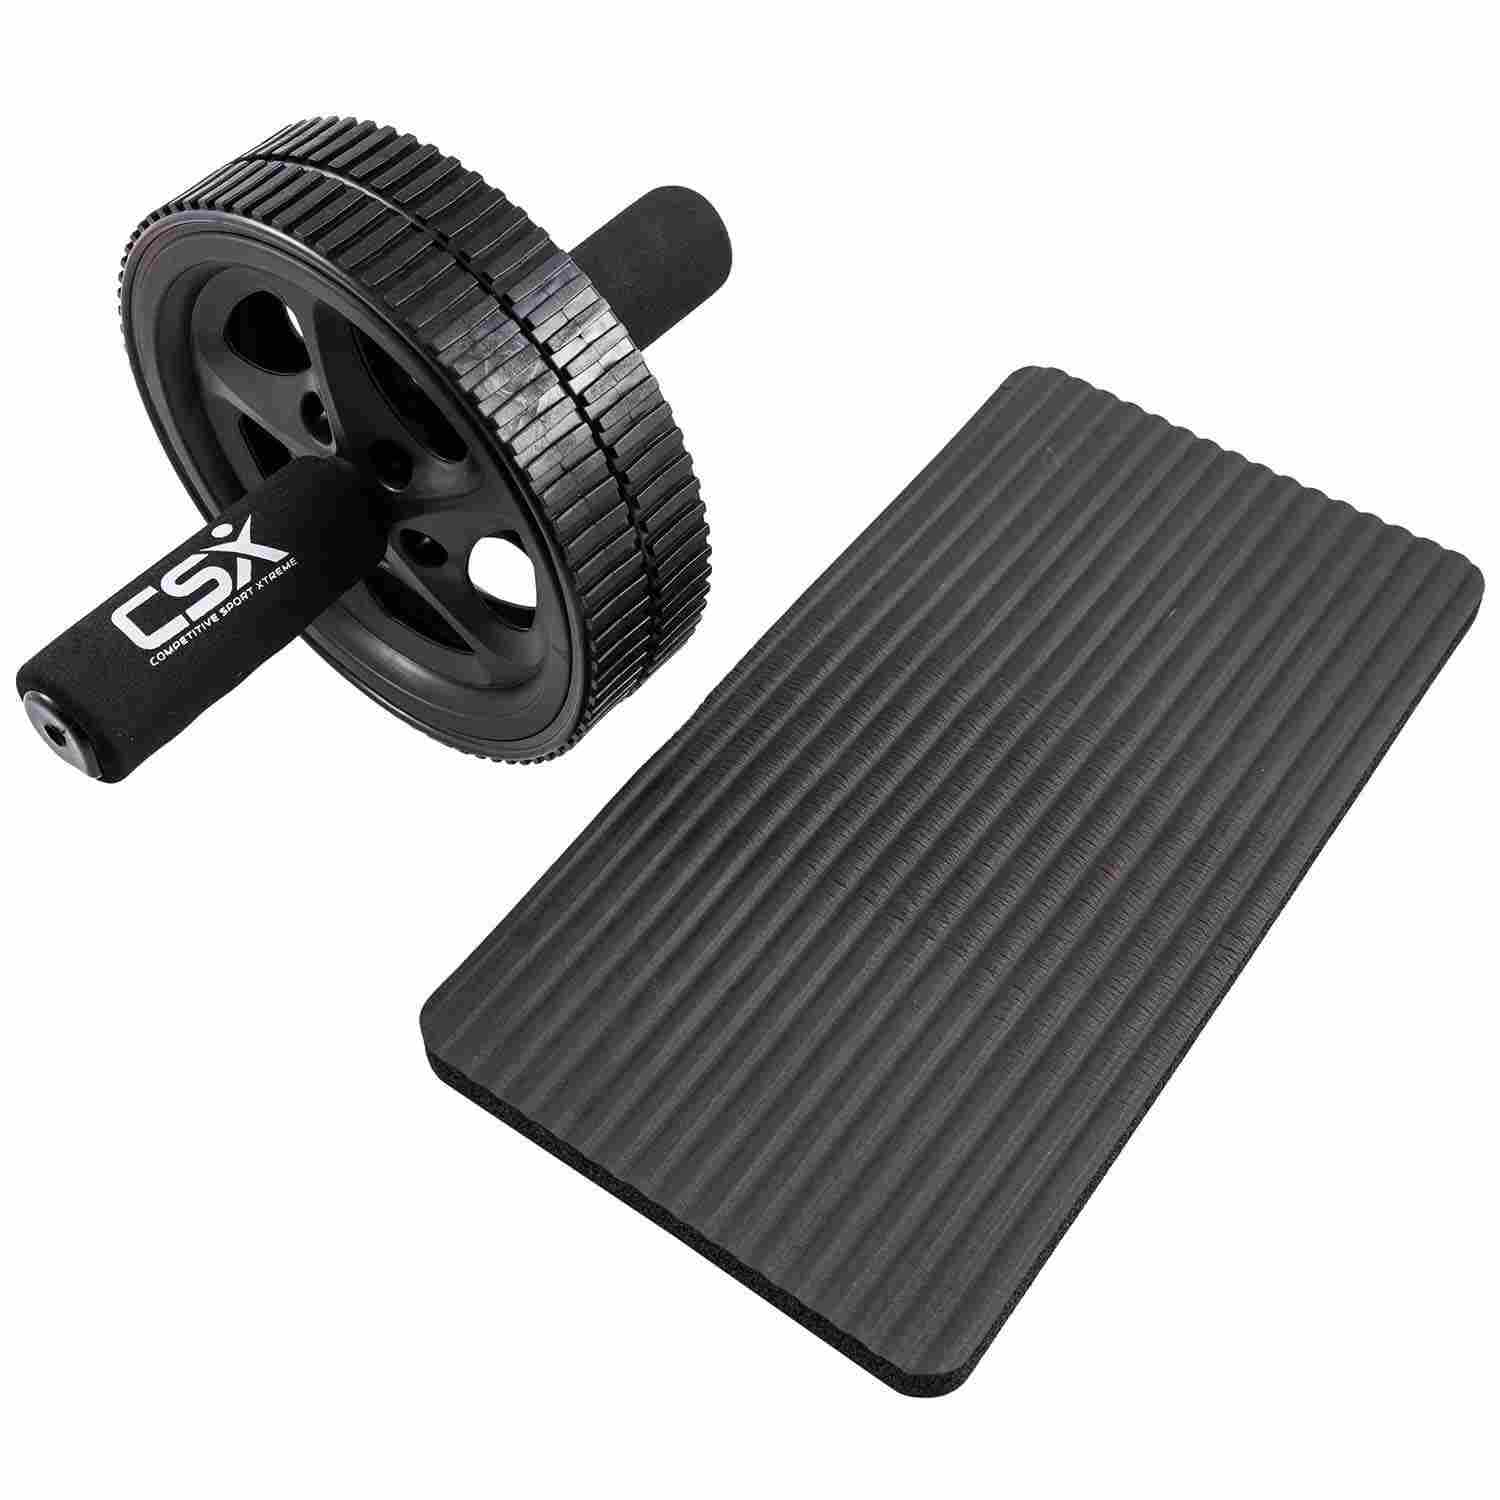 7. Competitive Sport Xtreme (CSX) Dual Ab Roller